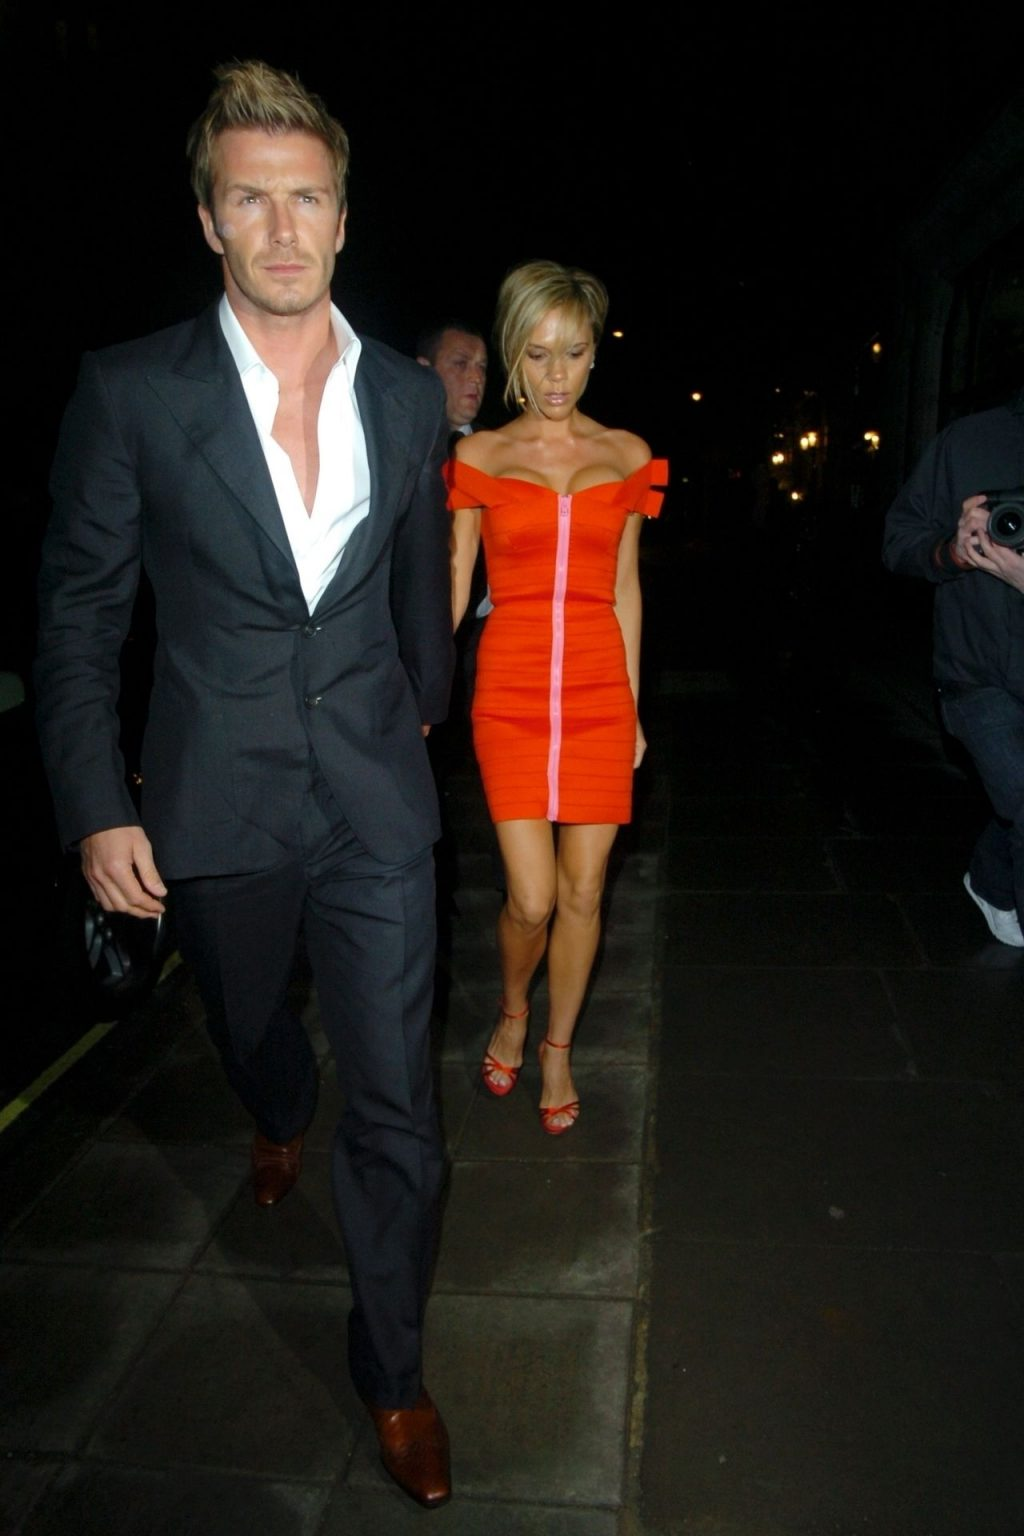 Leggy Victoria Beckham Stuns in a Beautiful Dress in London (17 Photos)